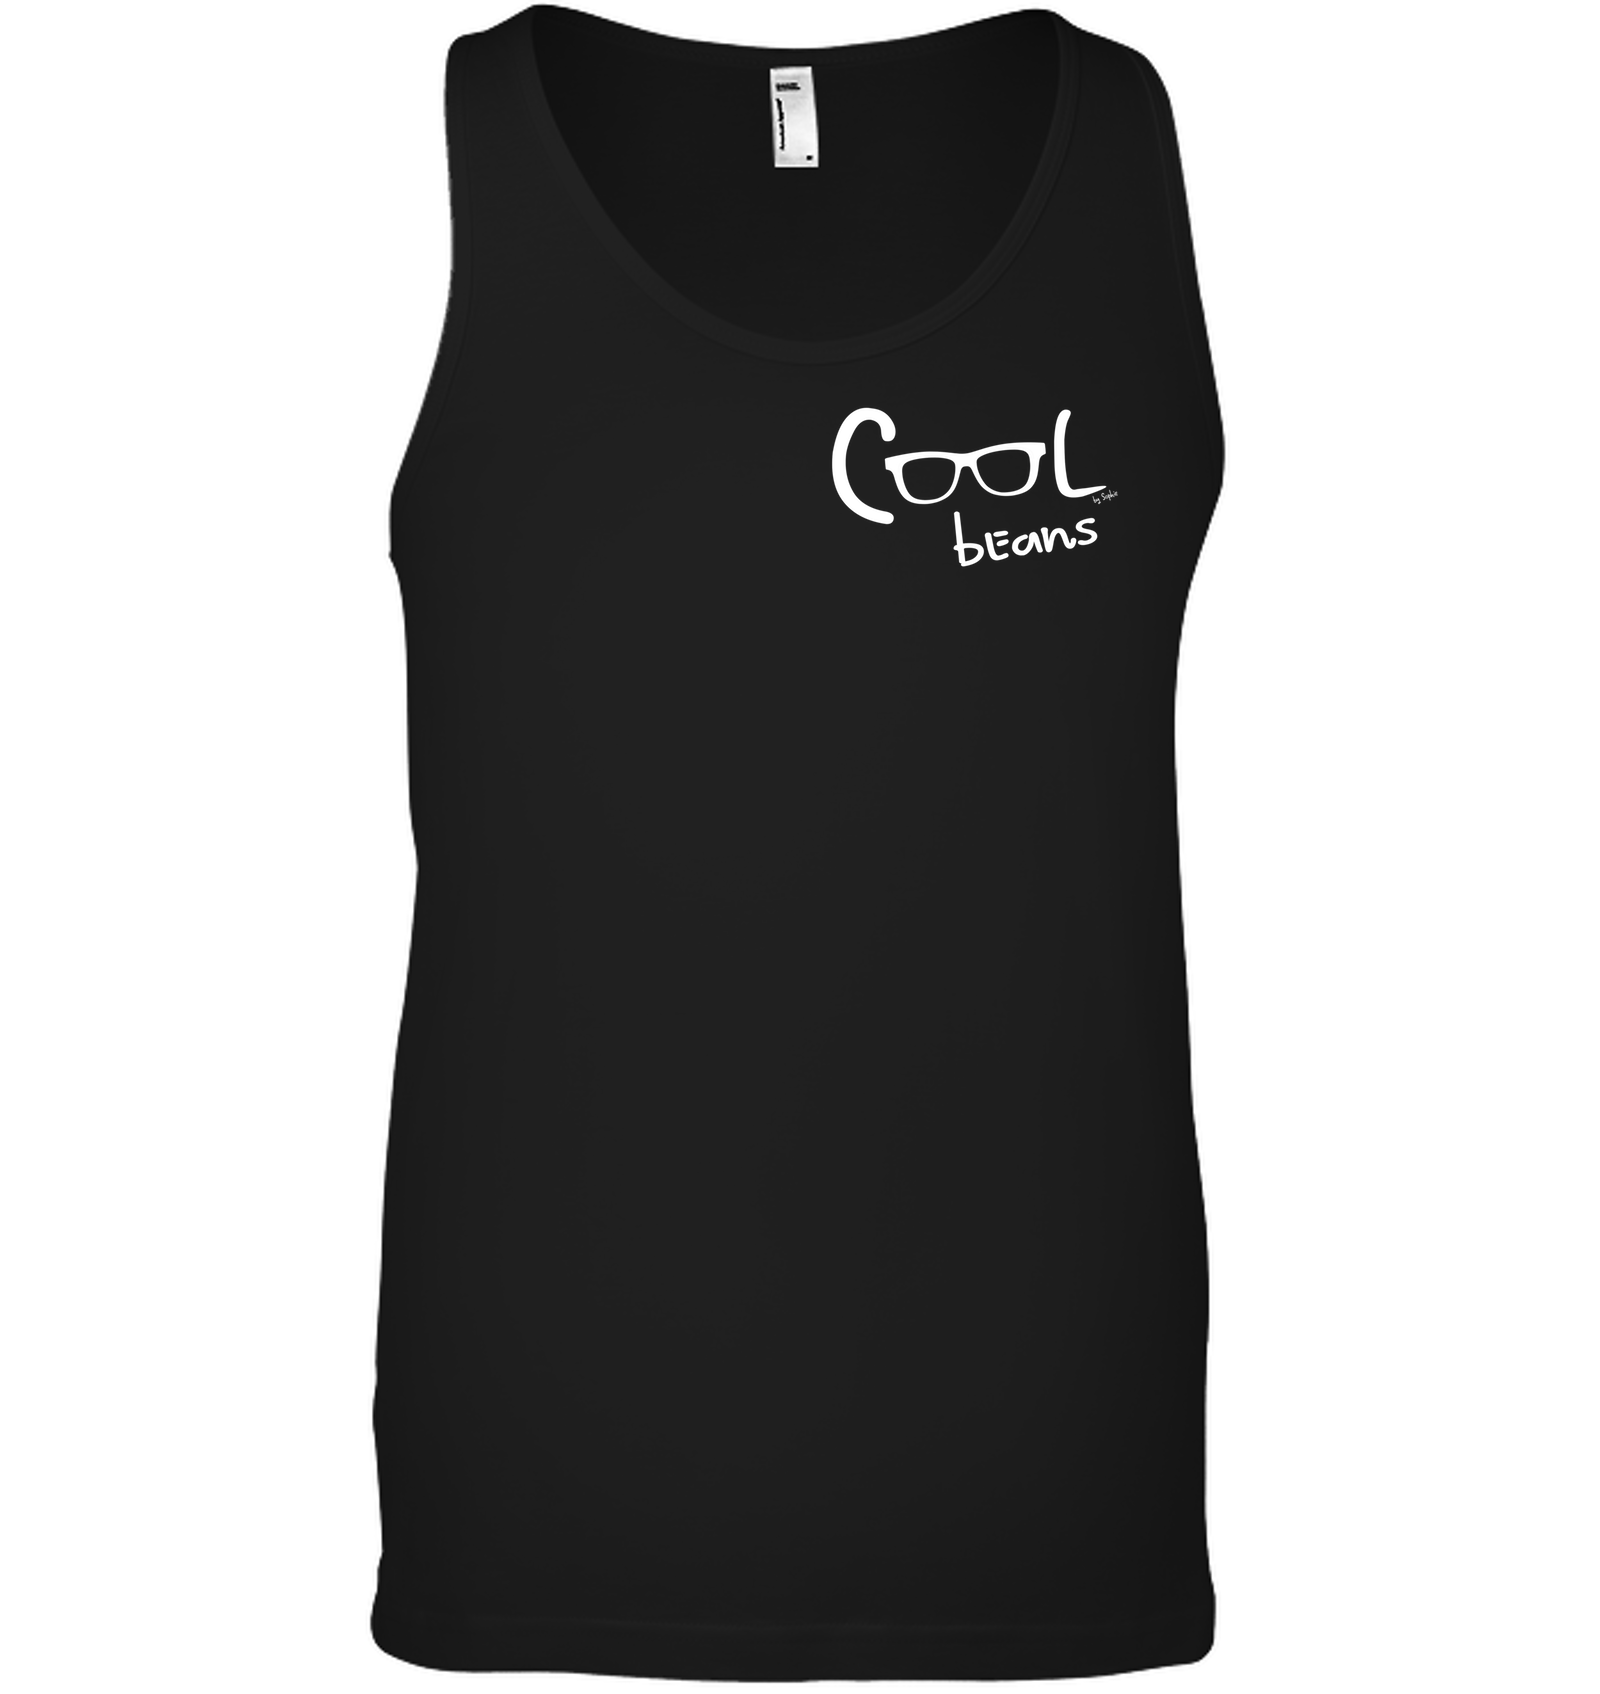 Cool Beans - White (Pocket Size) - Bella + Canvas Unisex Jersey Tank